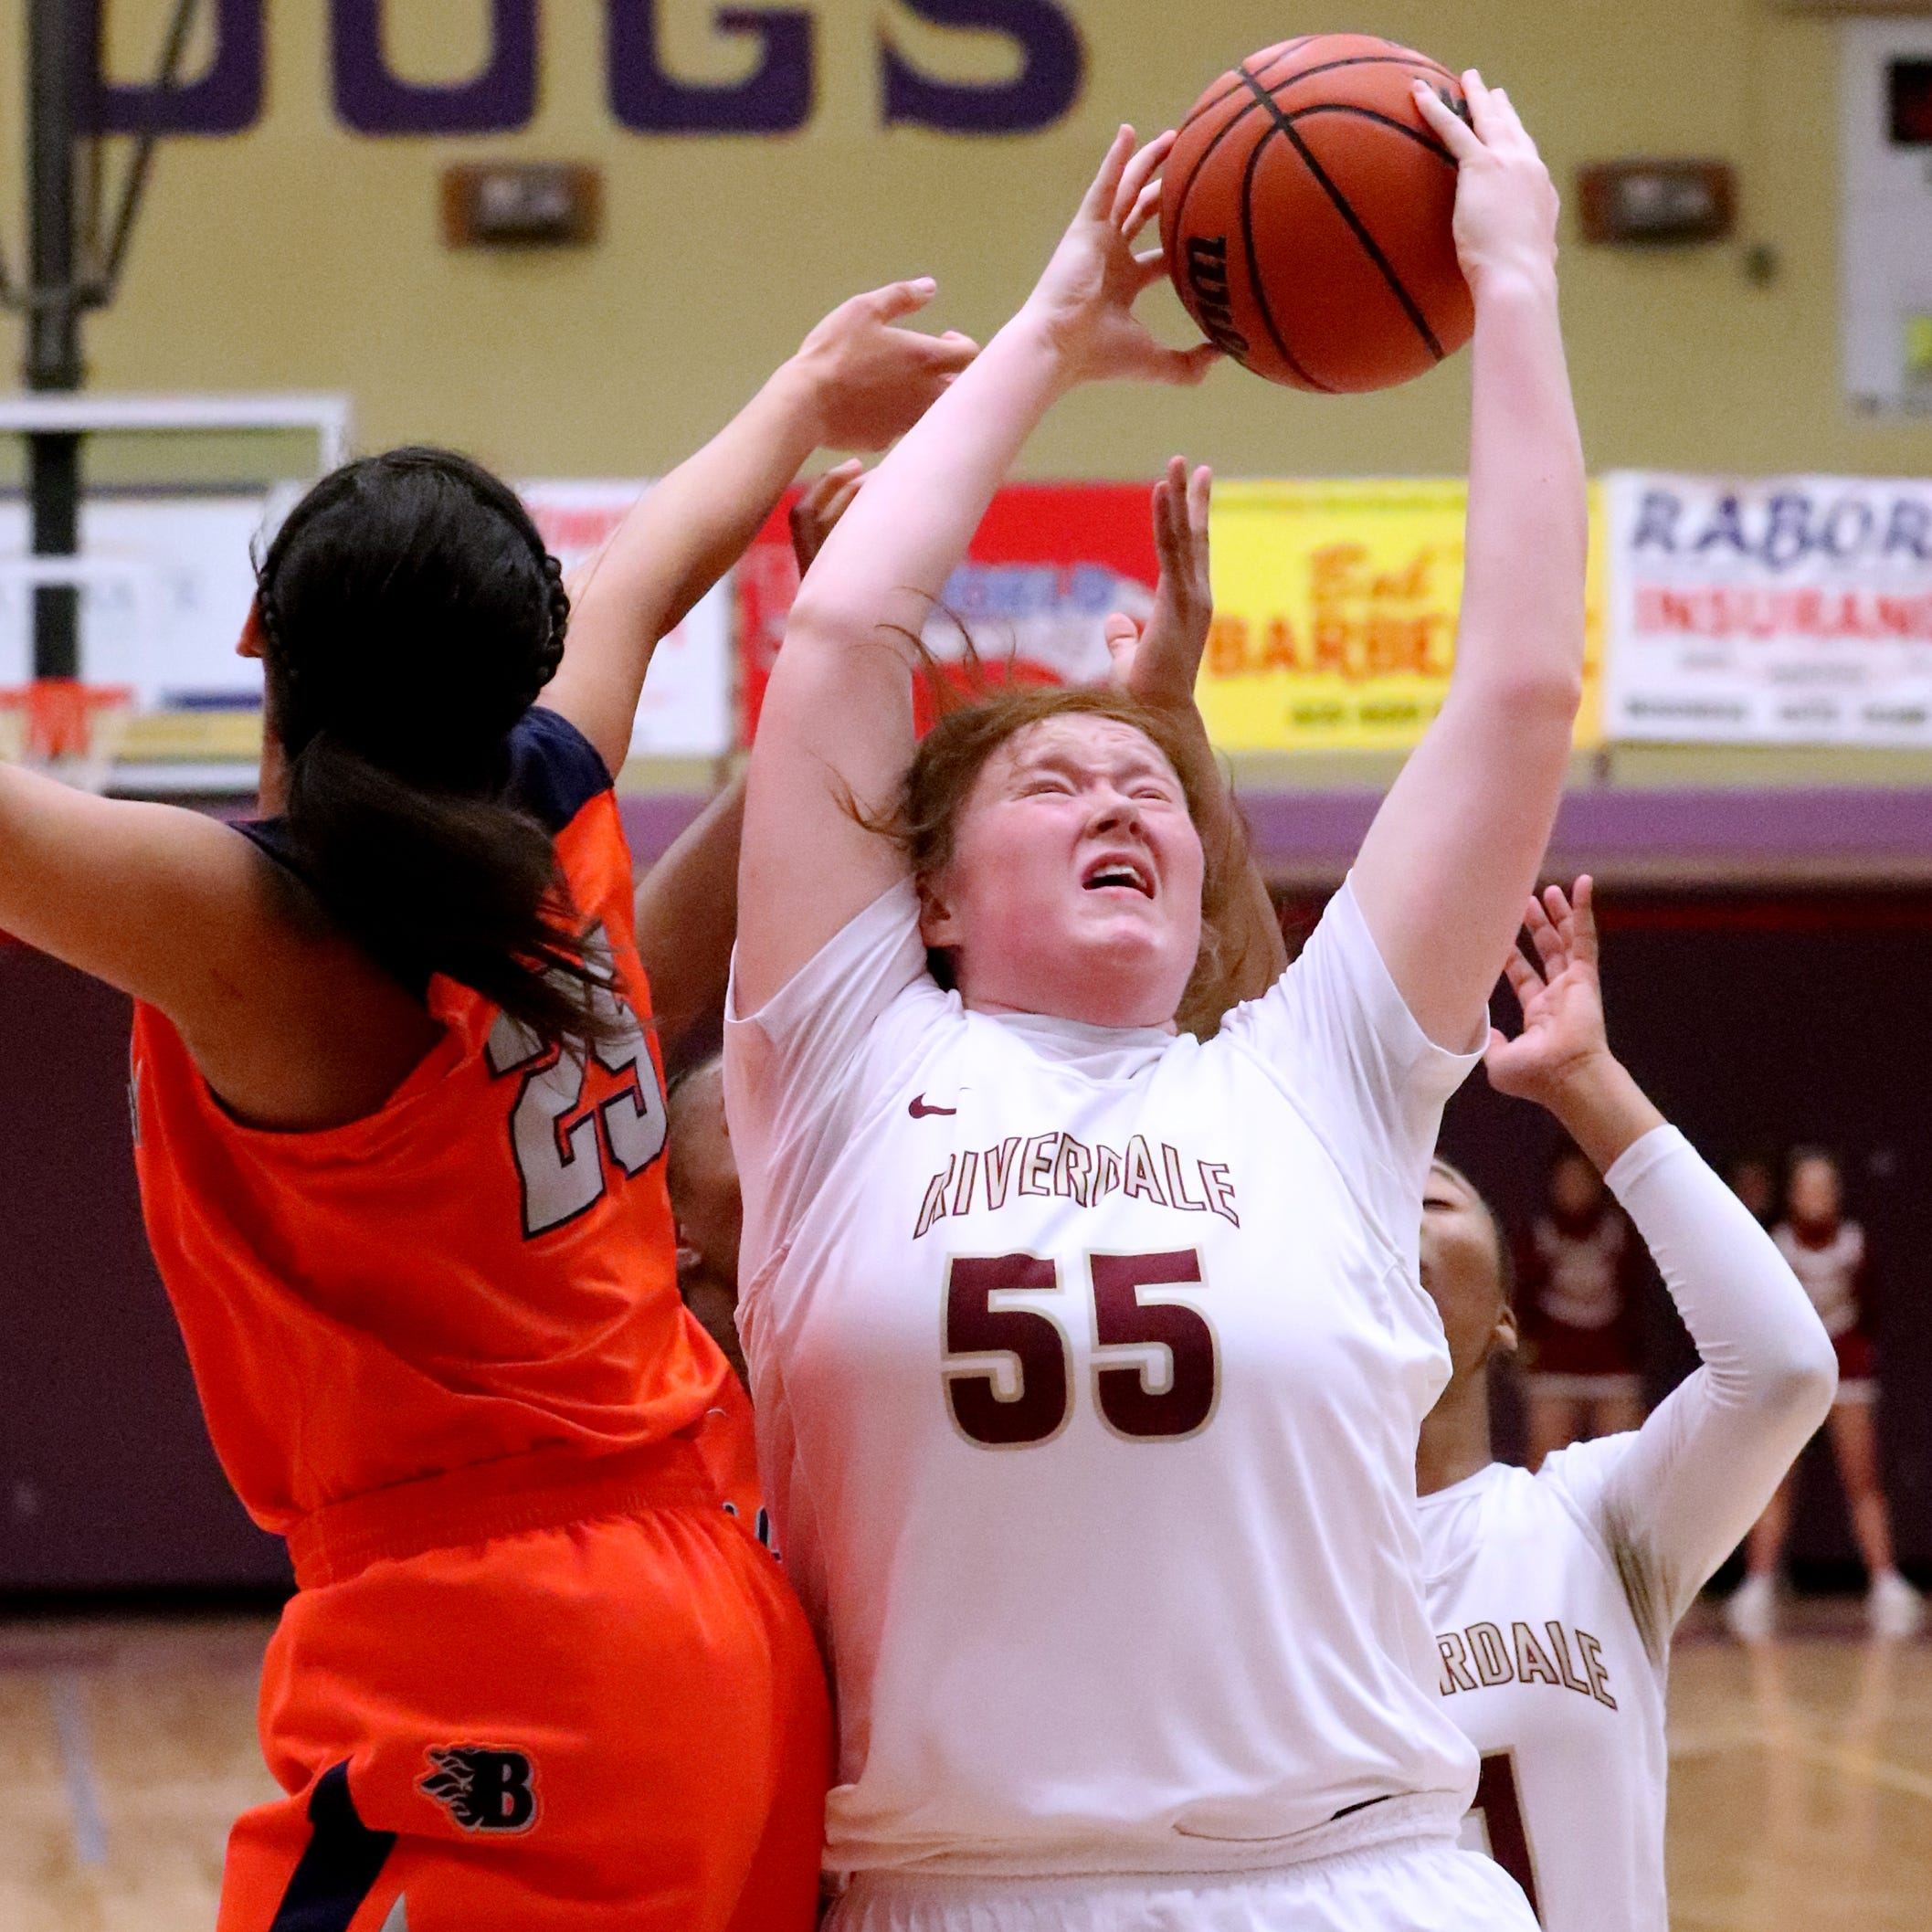 Riverdale's Katelyn Worely (55) and Blackman's Aaliyah Green (25) both go after a rebound during the District 7-AAA tournament championship game on Monday, Feb. 18, 2019.